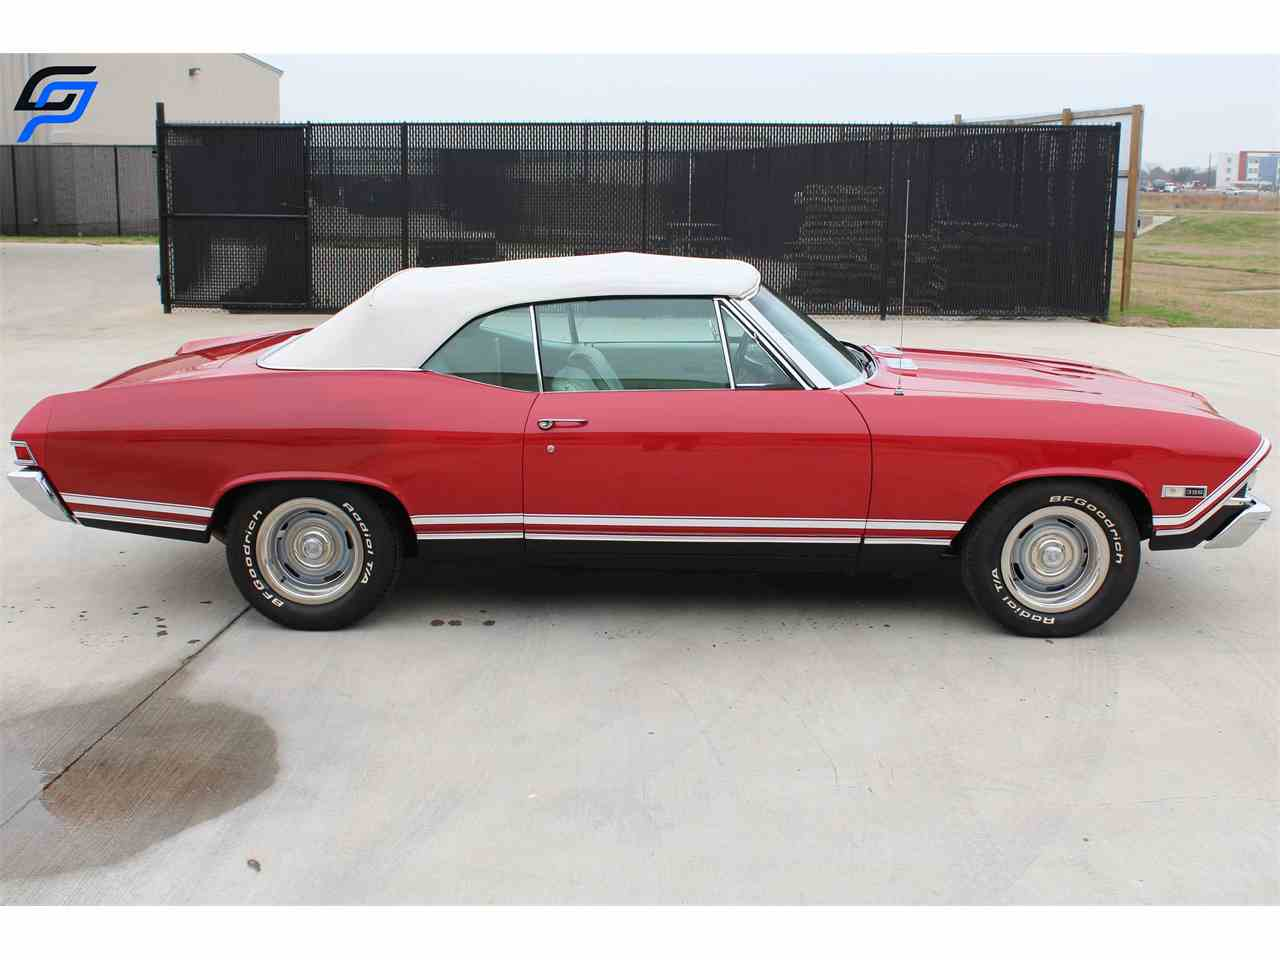 Large Picture of Classic 1968 Chevrolet Chevelle SS located in Texas - $49,000.00 - KOM6